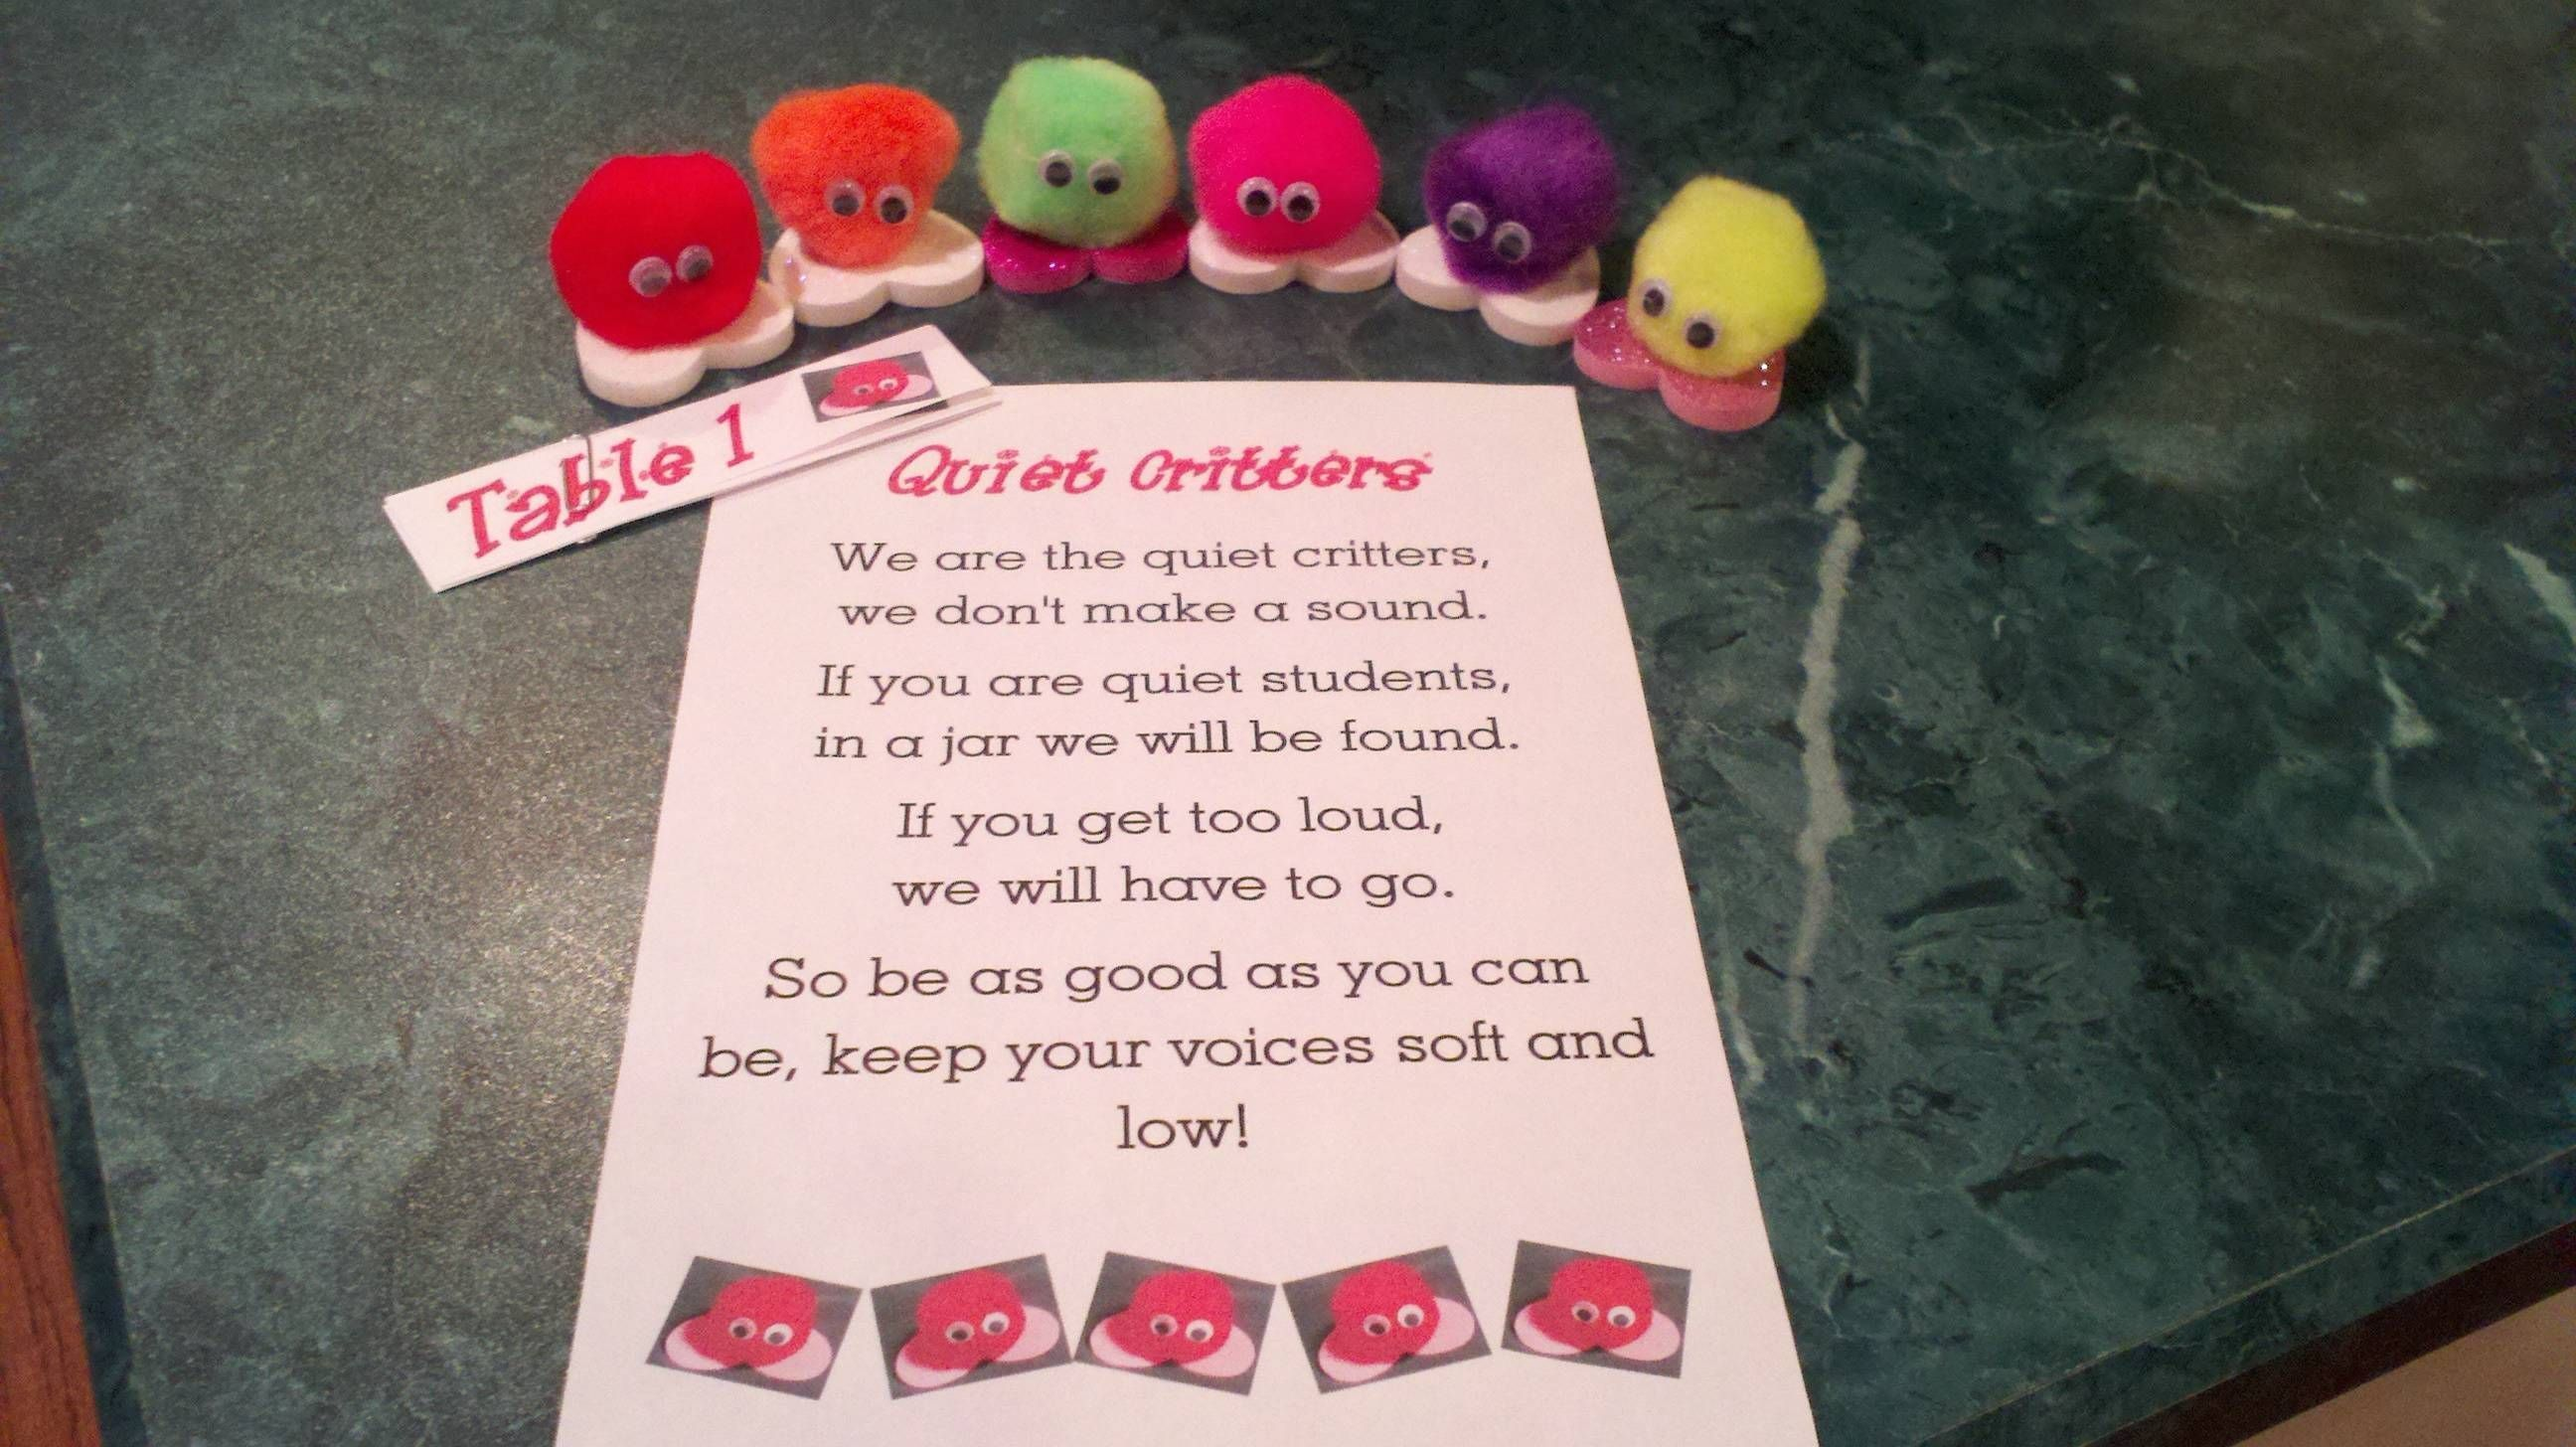 My version of Quiet Critters with a poem that I made up and jar labels! #quietcritters My version of Quiet Critters with a poem that I made up and jar labels! #quietcritters My version of Quiet Critters with a poem that I made up and jar labels! #quietcritters My version of Quiet Critters with a poem that I made up and jar labels! #quietcritters My version of Quiet Critters with a poem that I made up and jar labels! #quietcritters My version of Quiet Critters with a poem that I made up and jar l #quietcritters